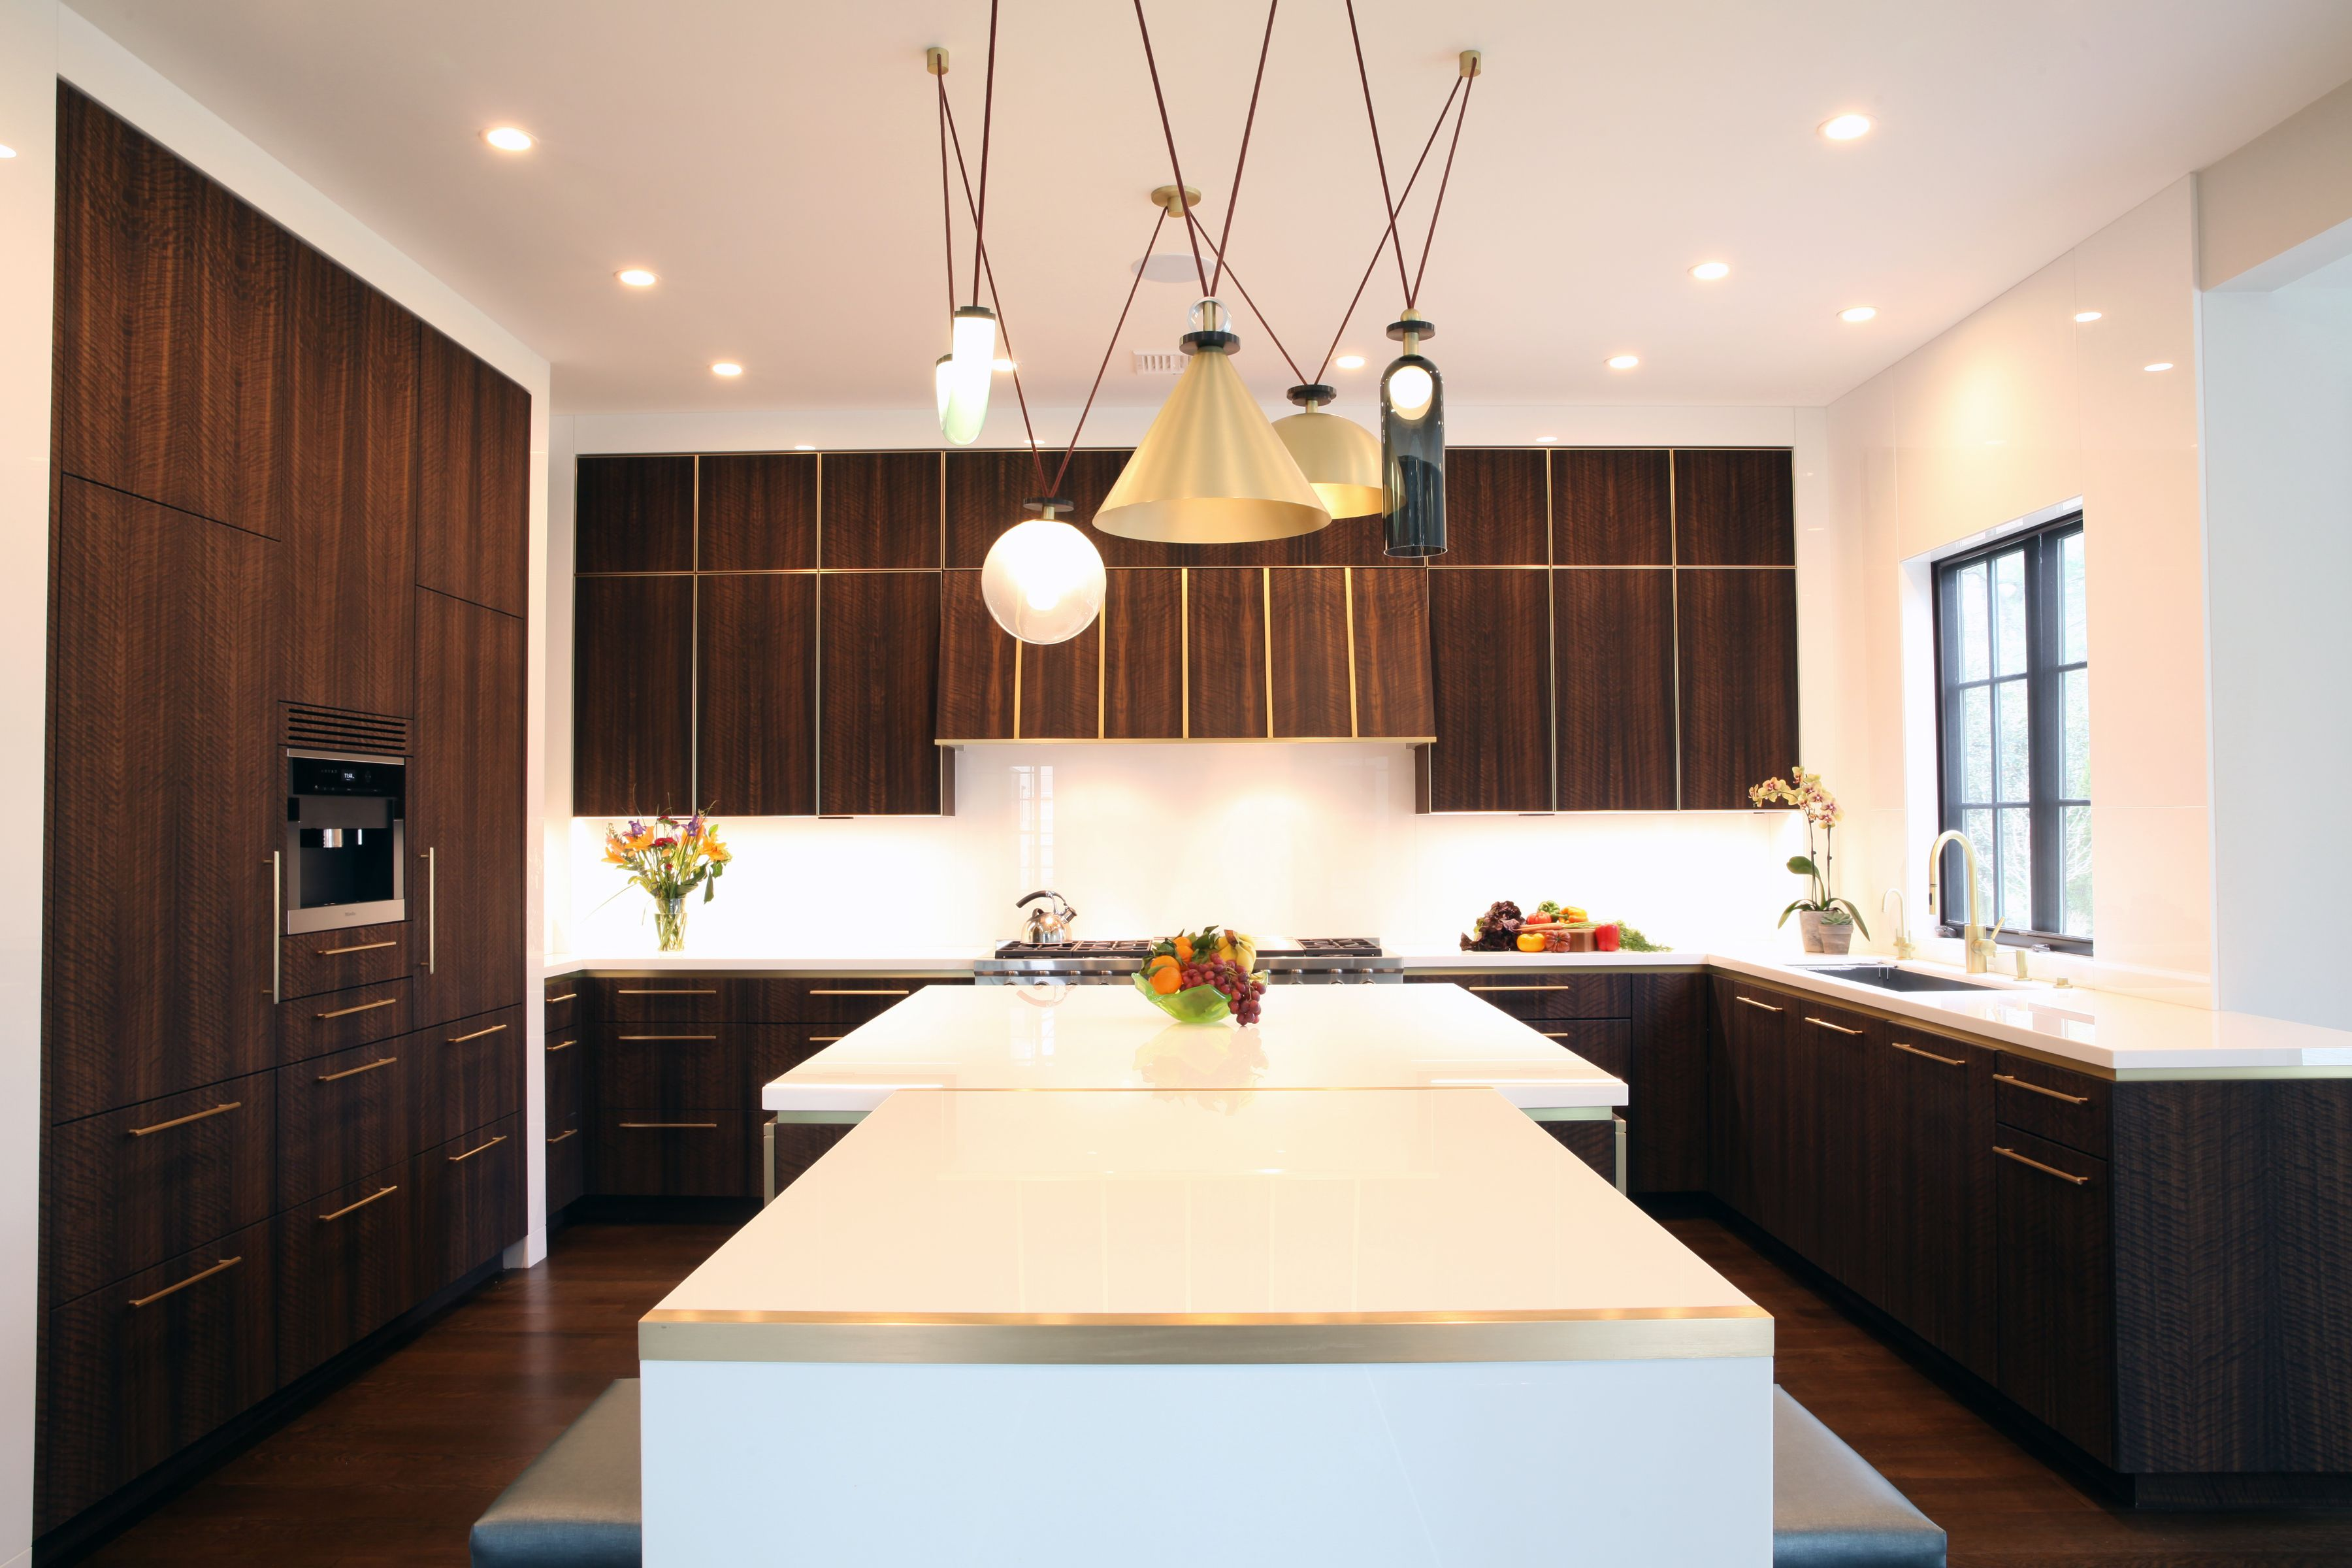 The Ultimate Kitchen In Modern Design In Westfield, New Jersey